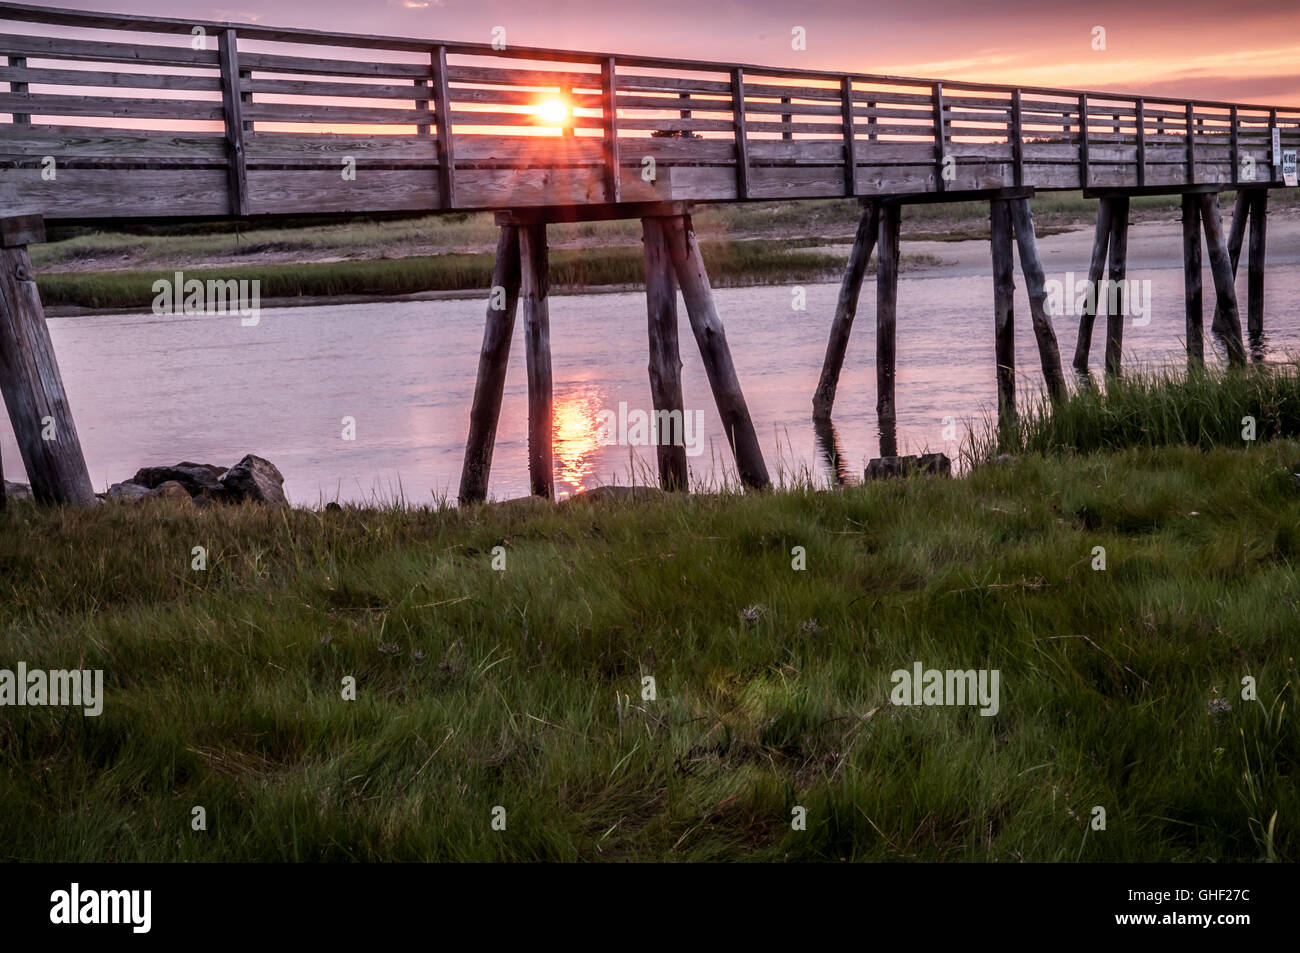 The Sun comes up on the other side of the bridge giving off its glow. It looks like it is making its way across - Stock Image